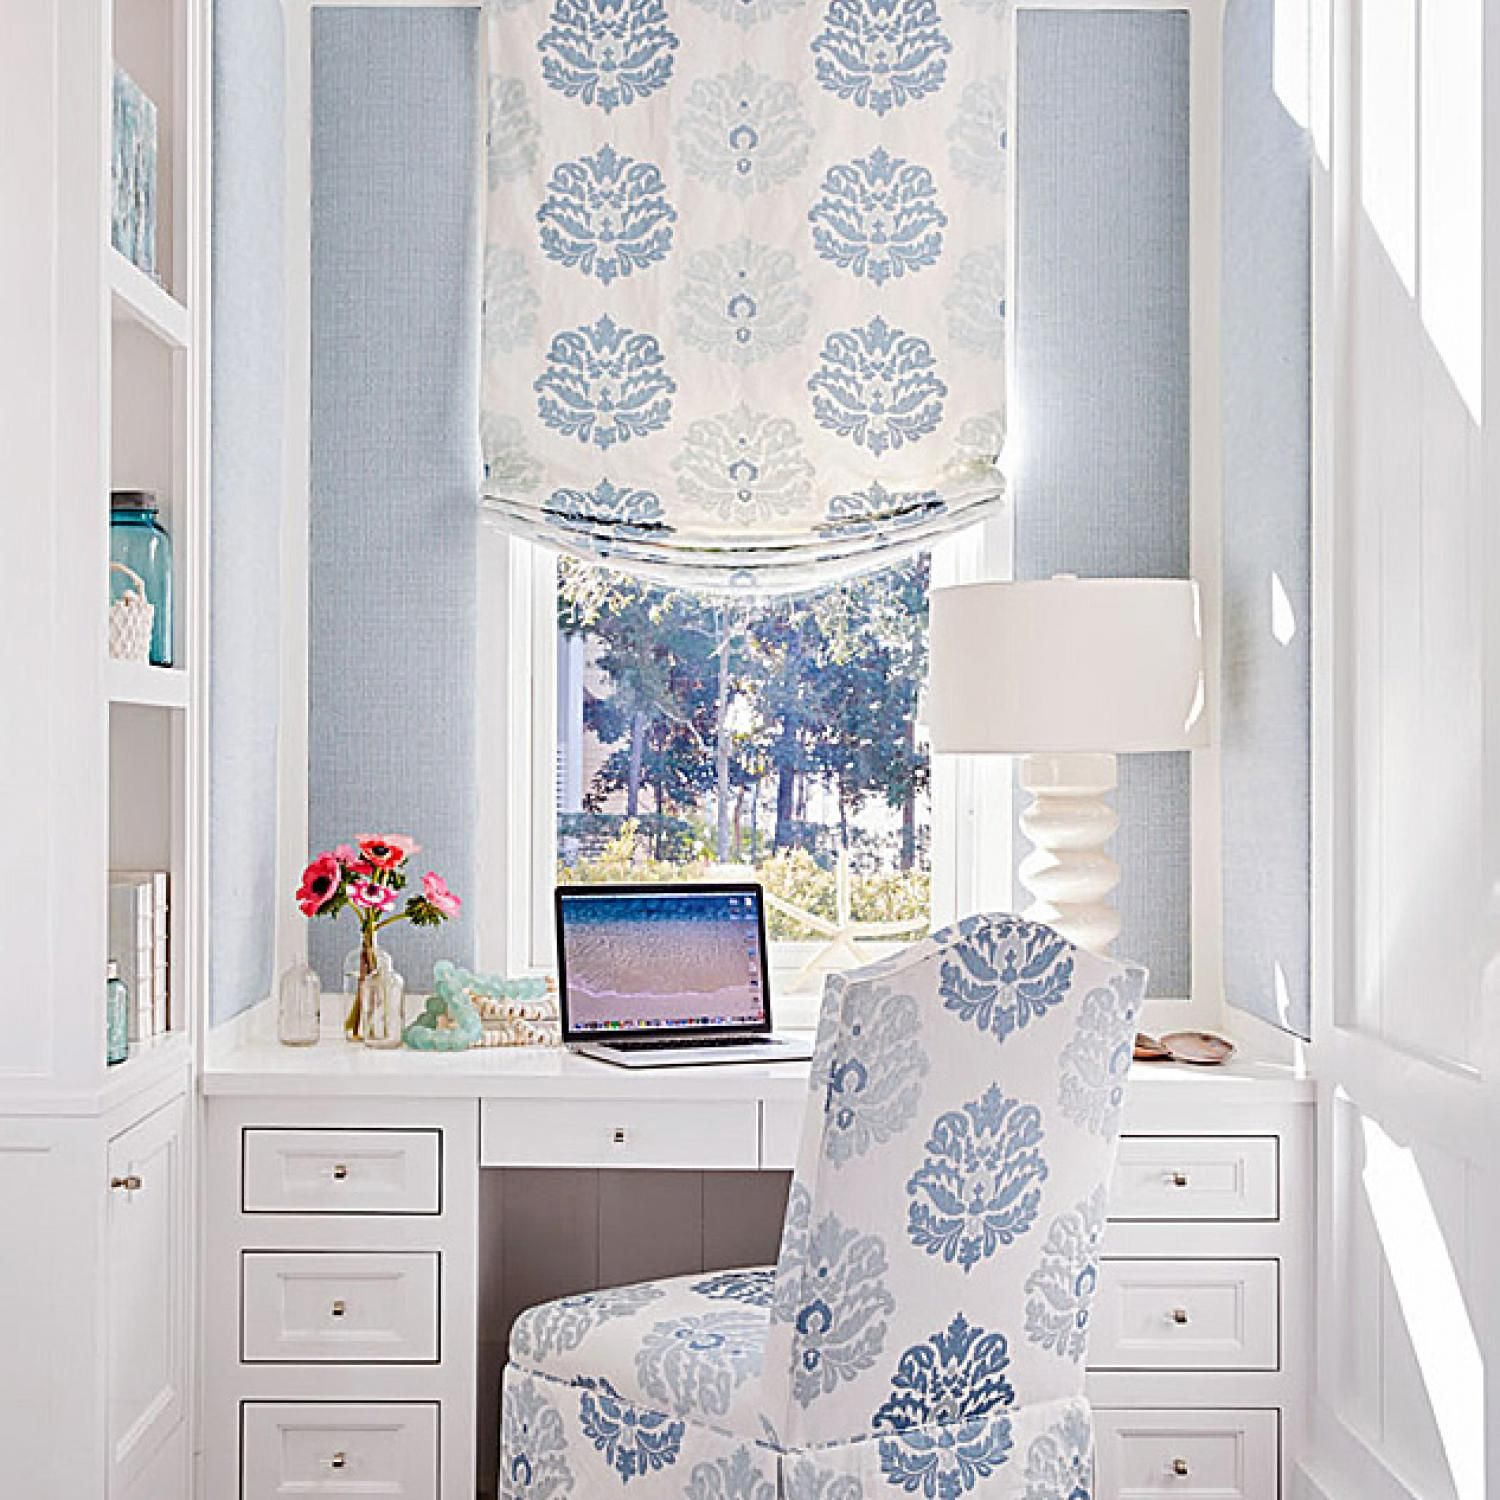 Decorating Ideas Clever Nooks And Crannies